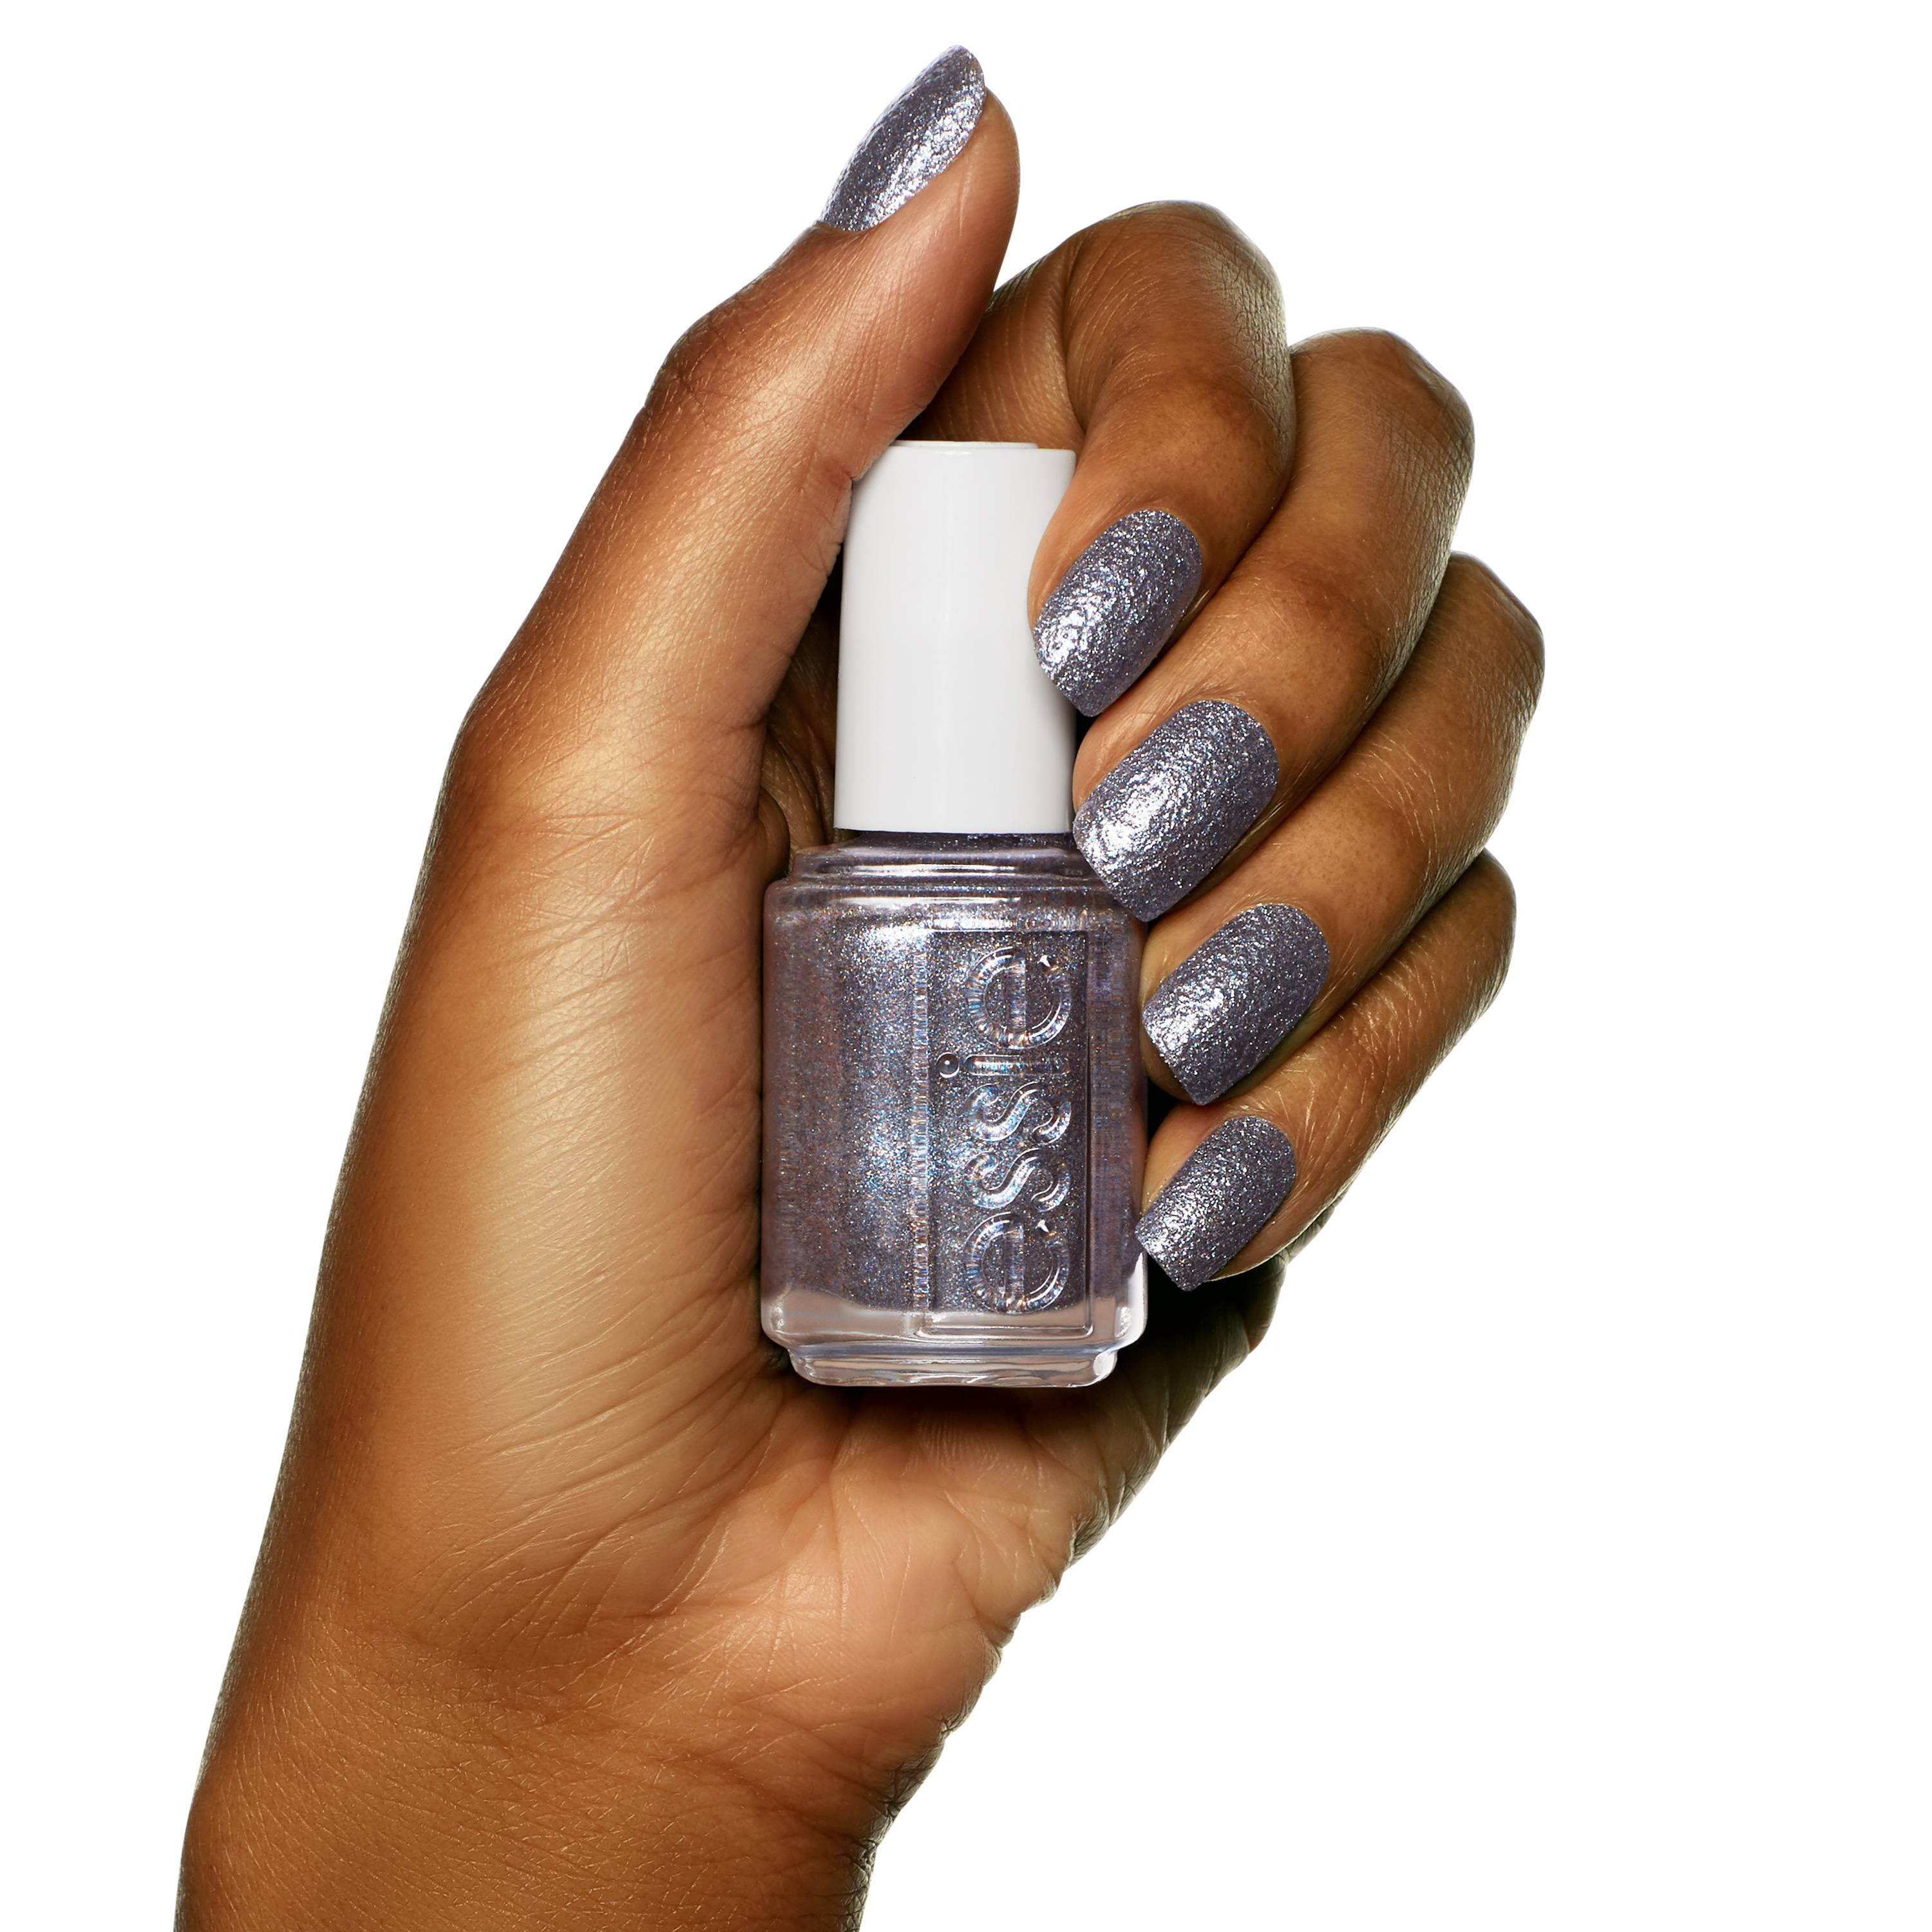 ESSIE-stay-up-slate-grey-glitter-nail-polish-on-hand